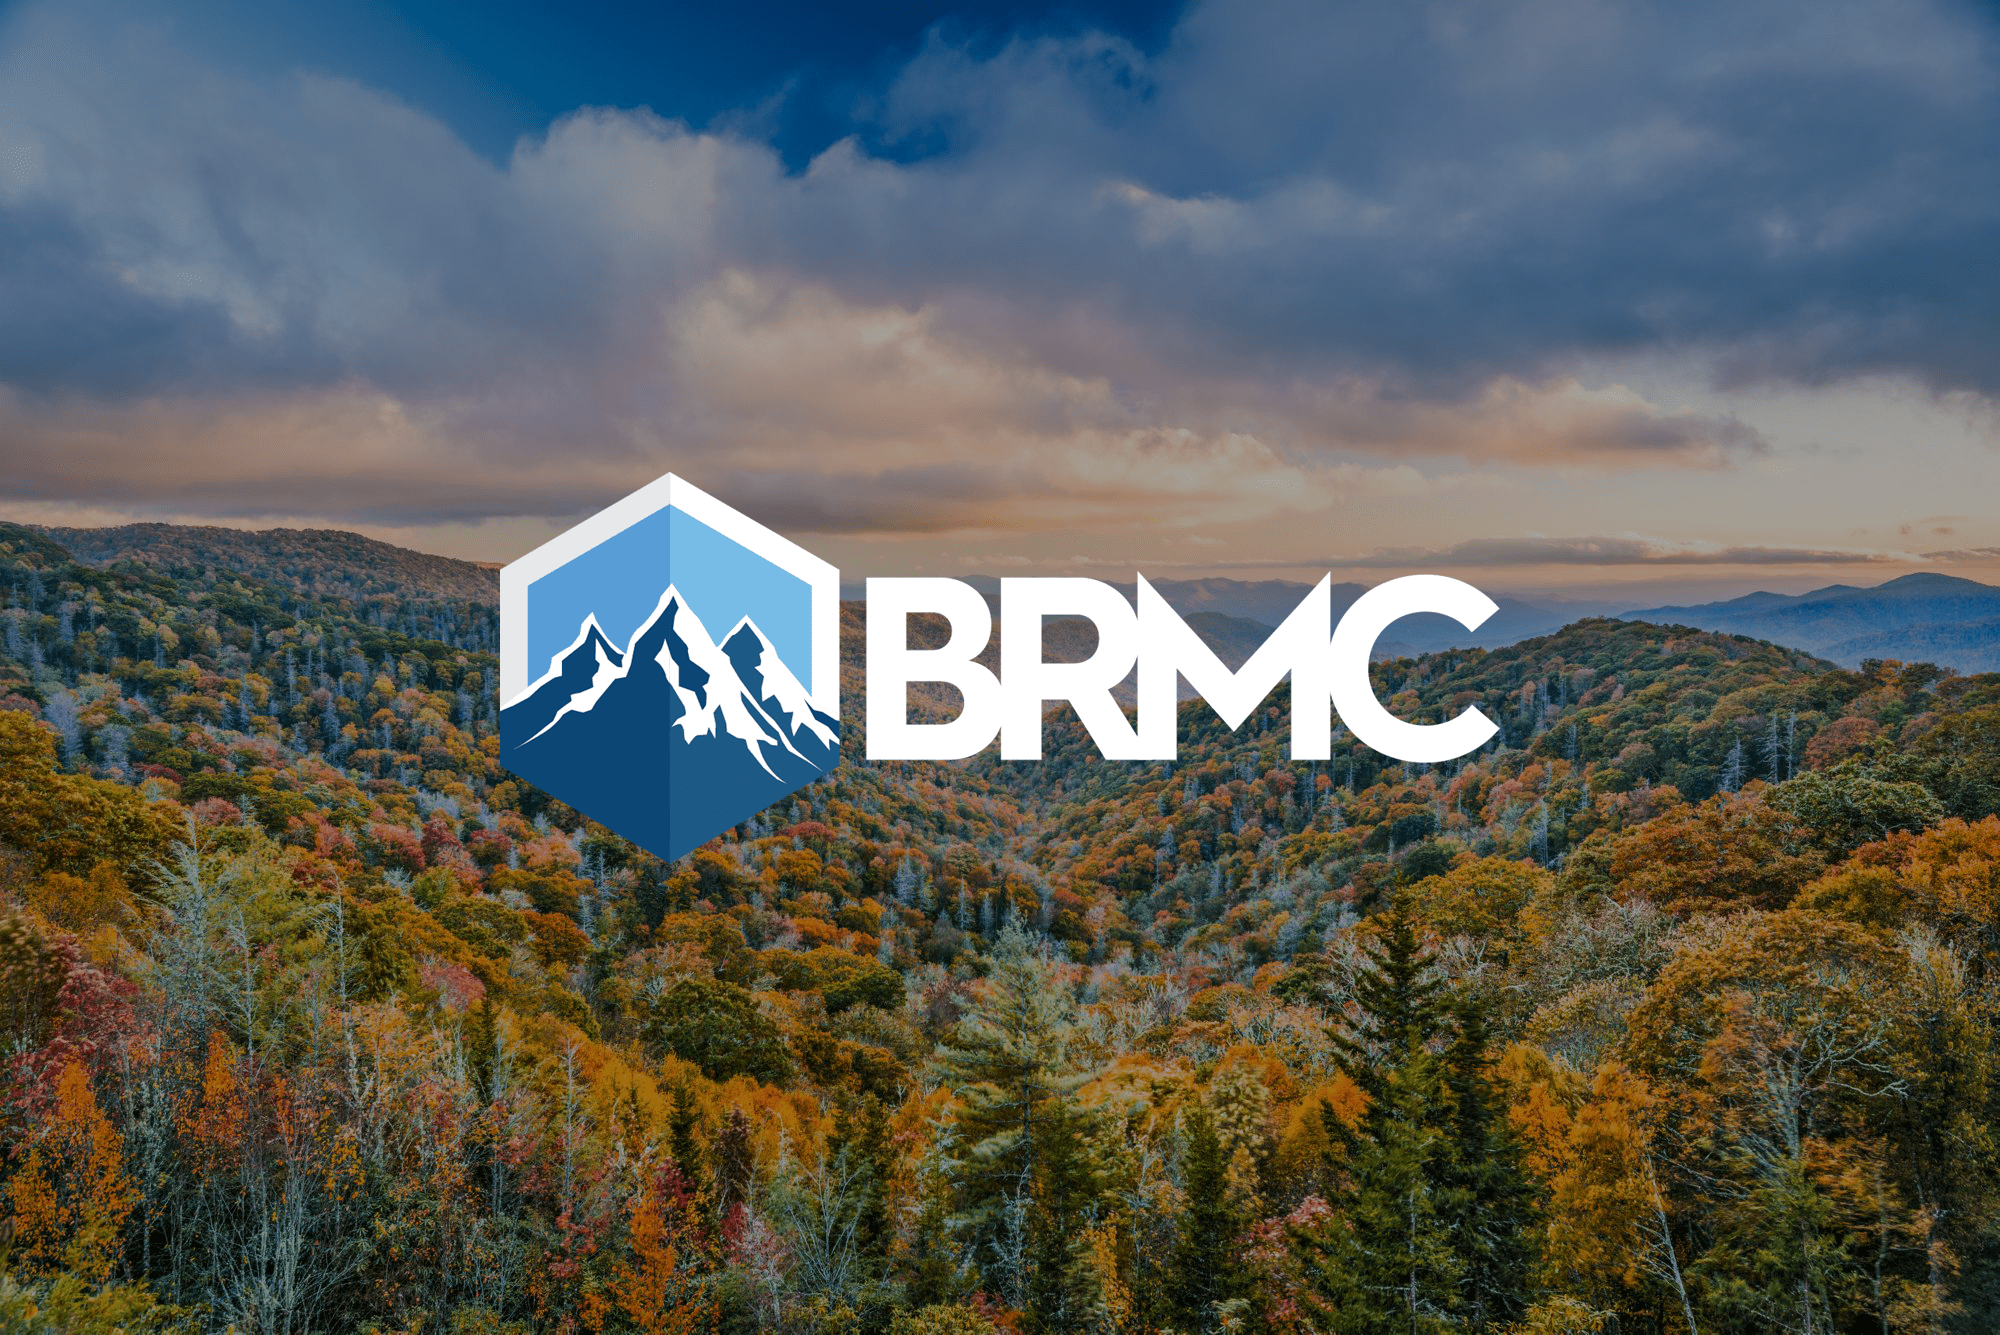 BRMC logo on scenic background